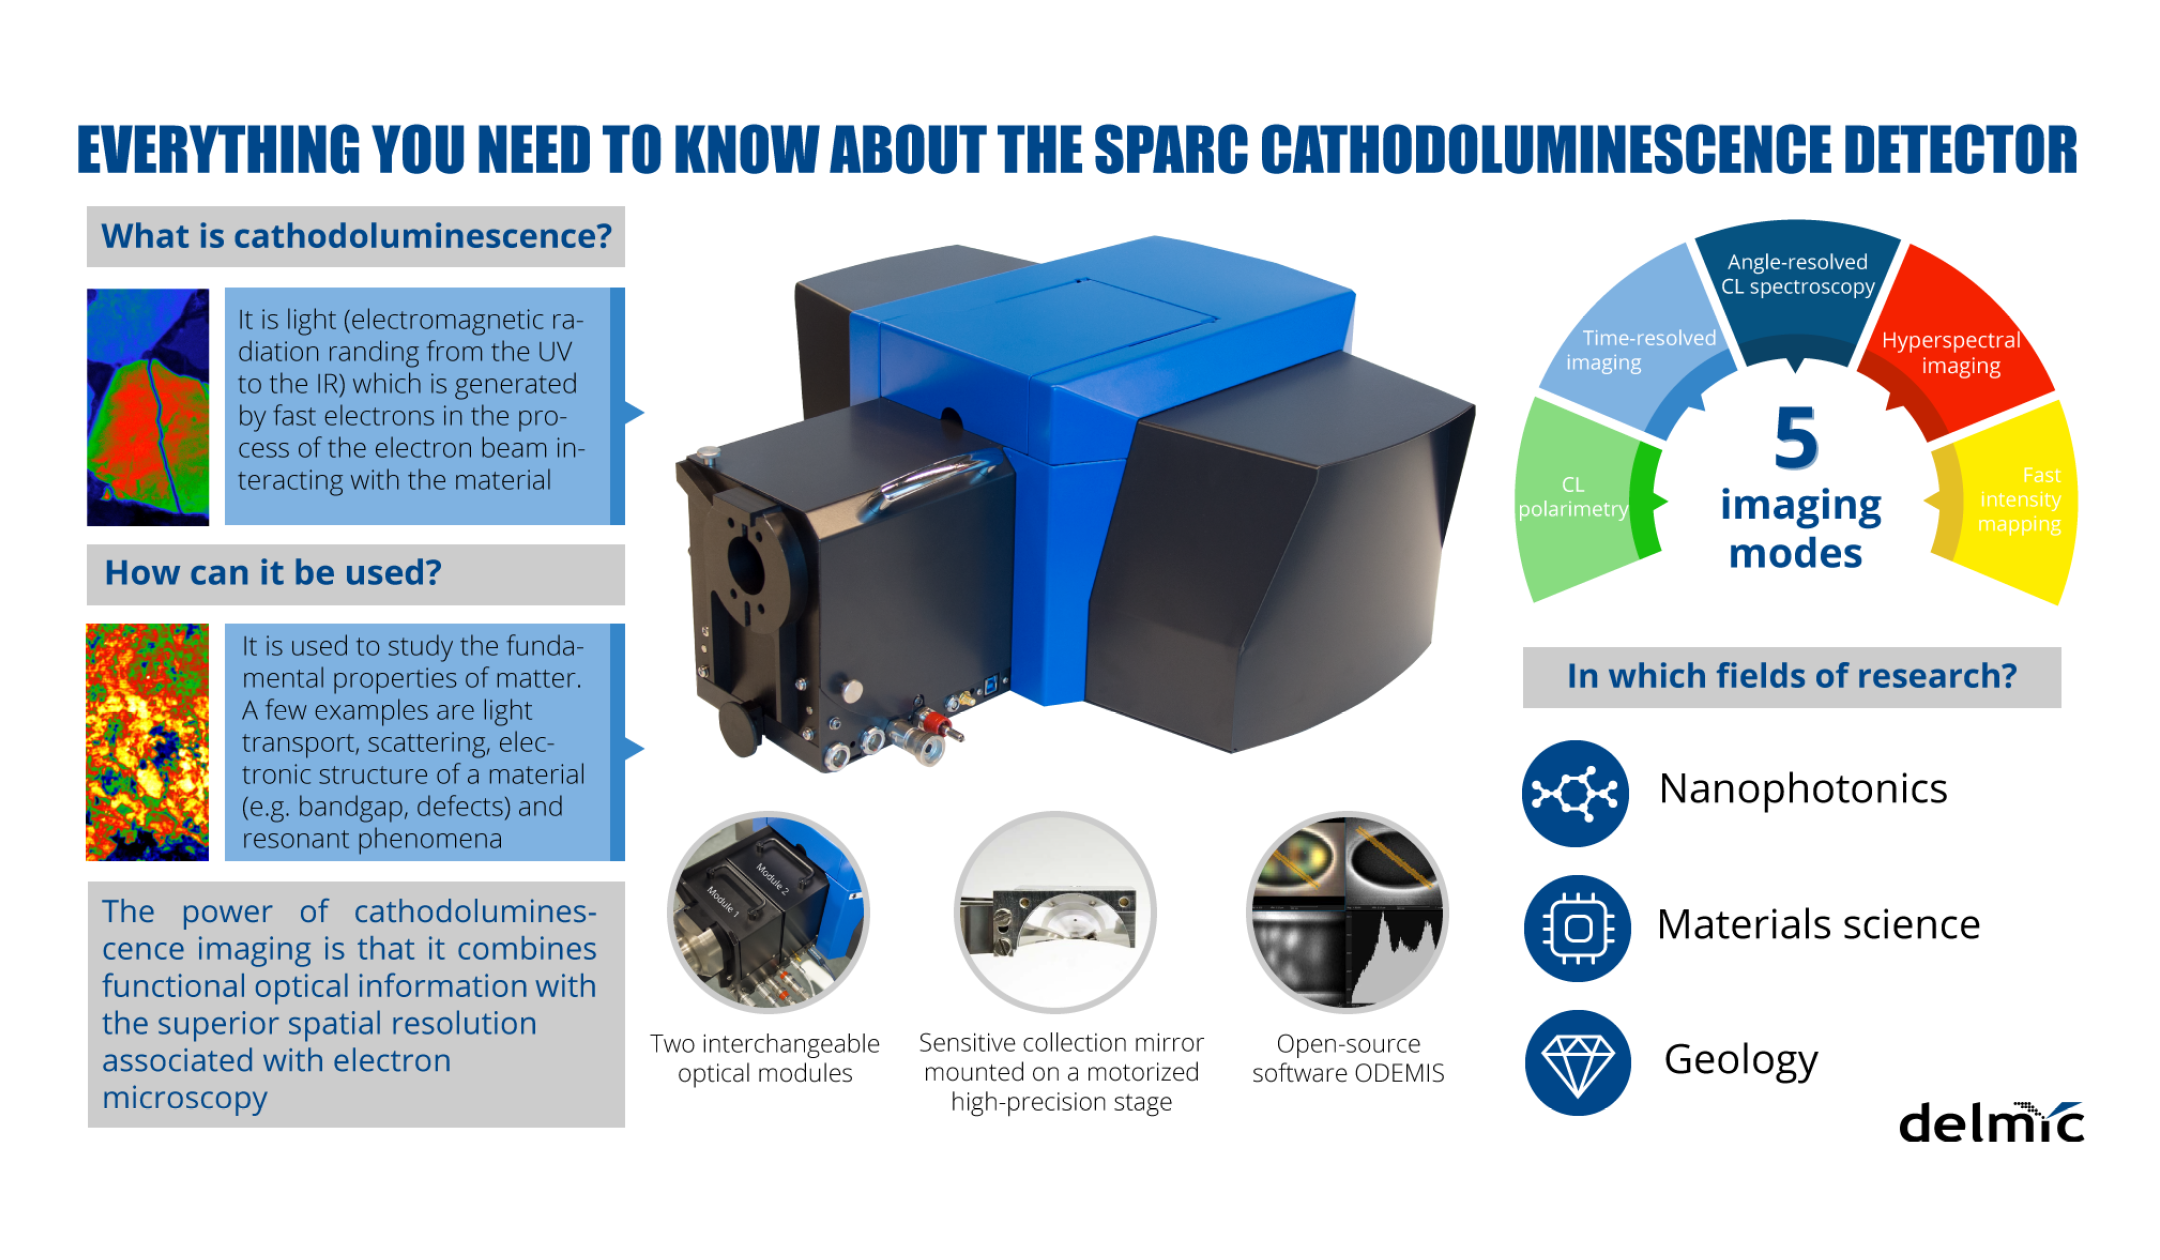 Everything you need to know about cathodoluminescence detection